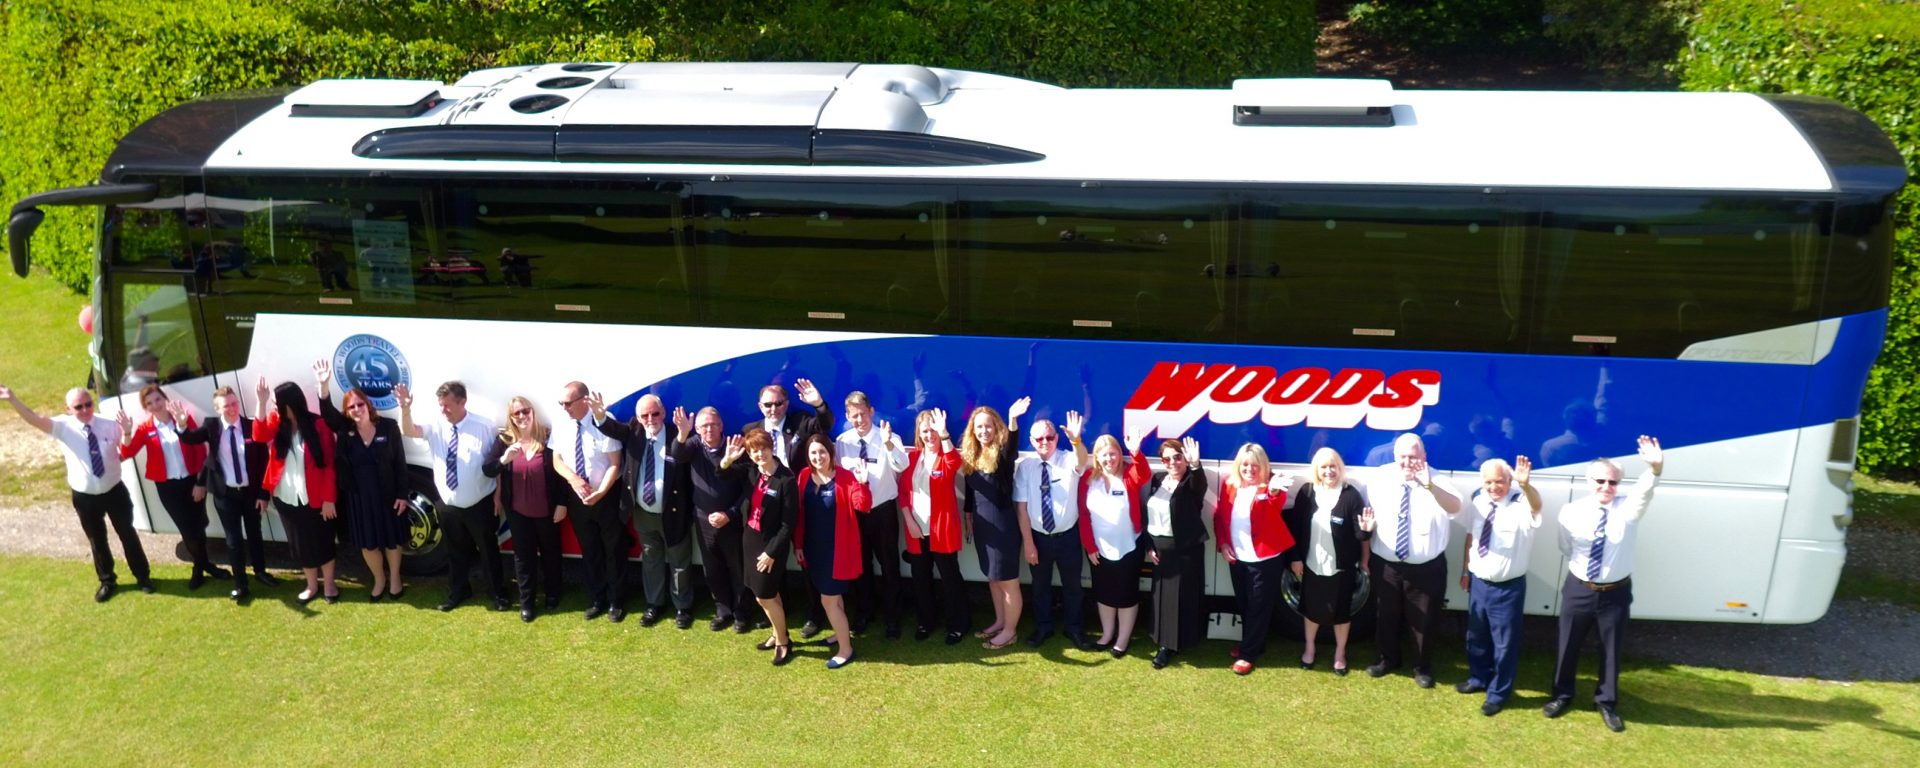 Woods Travel 45 Year Event Staff Picture